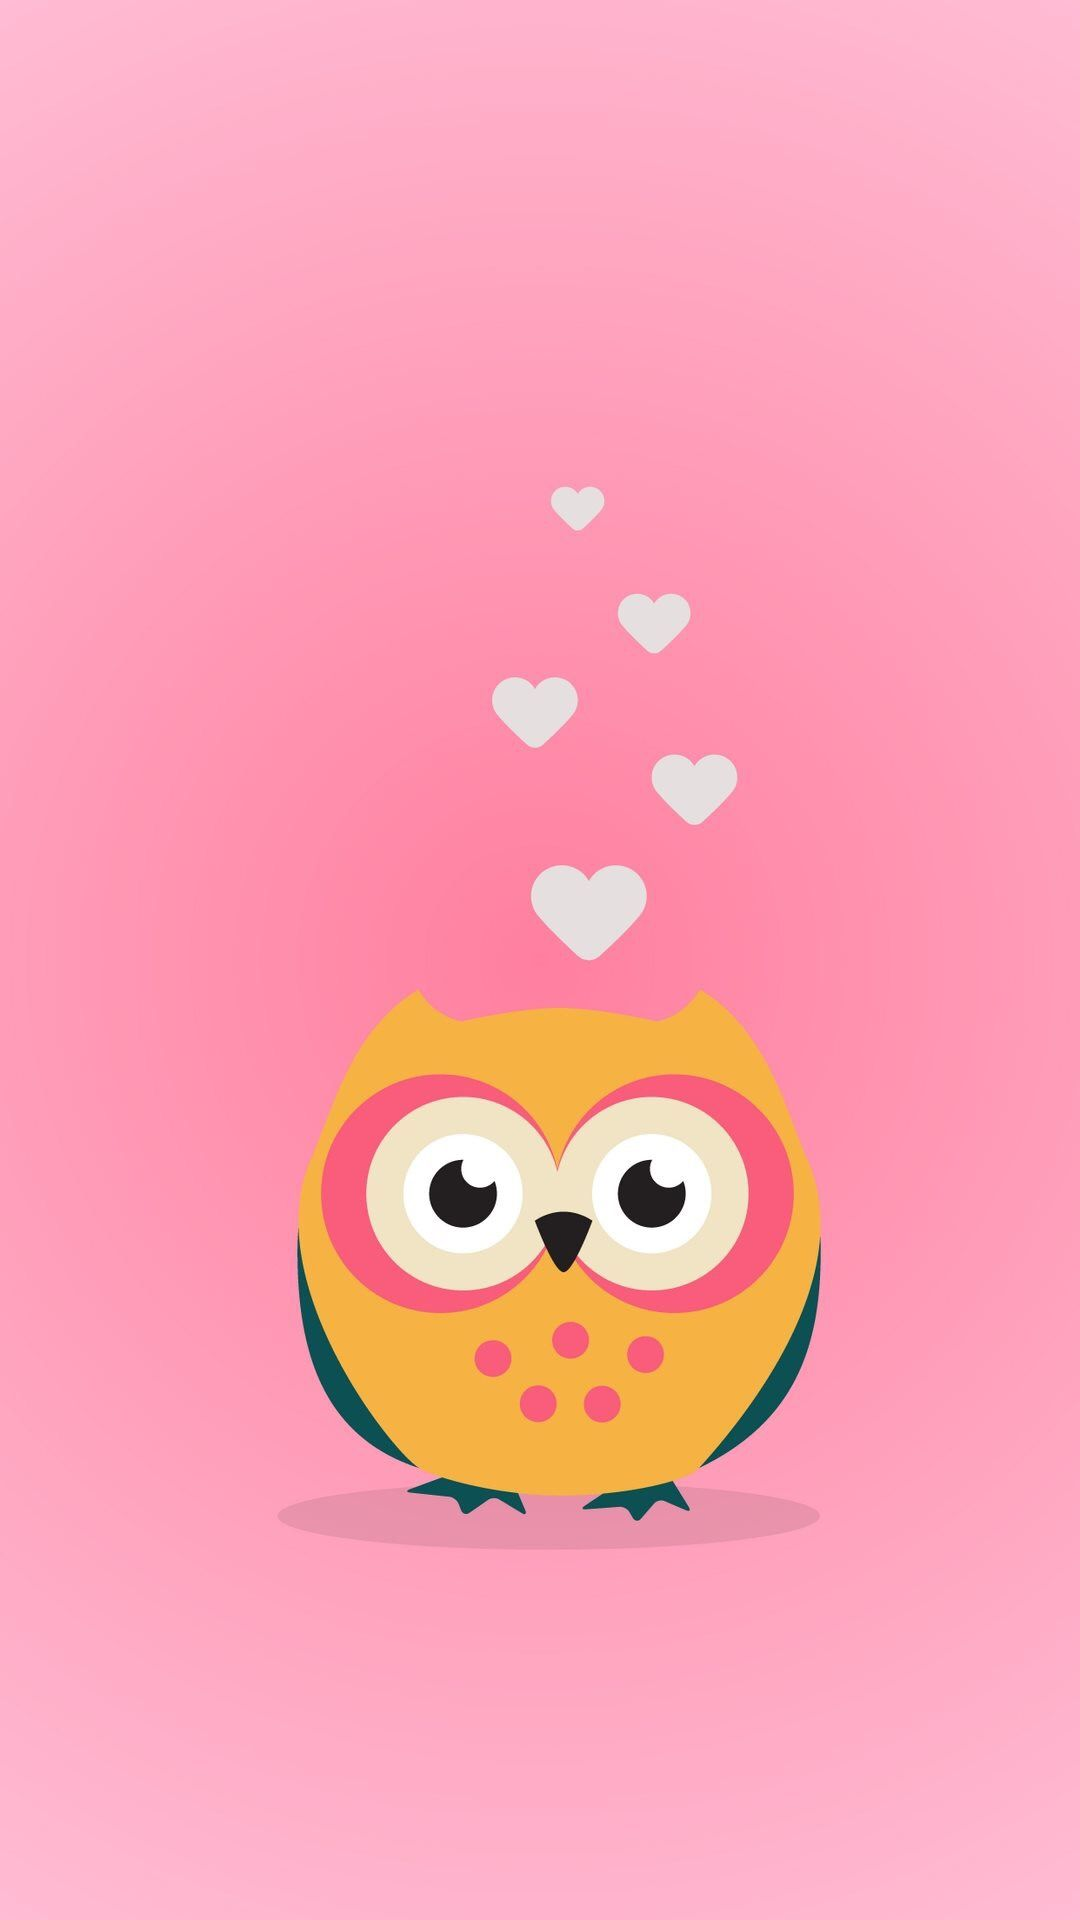 Owl Wallpaper Cute Iphone Wallpapers Owls Backgrounds Birds Pin Clementine On Jpg 1080x1920